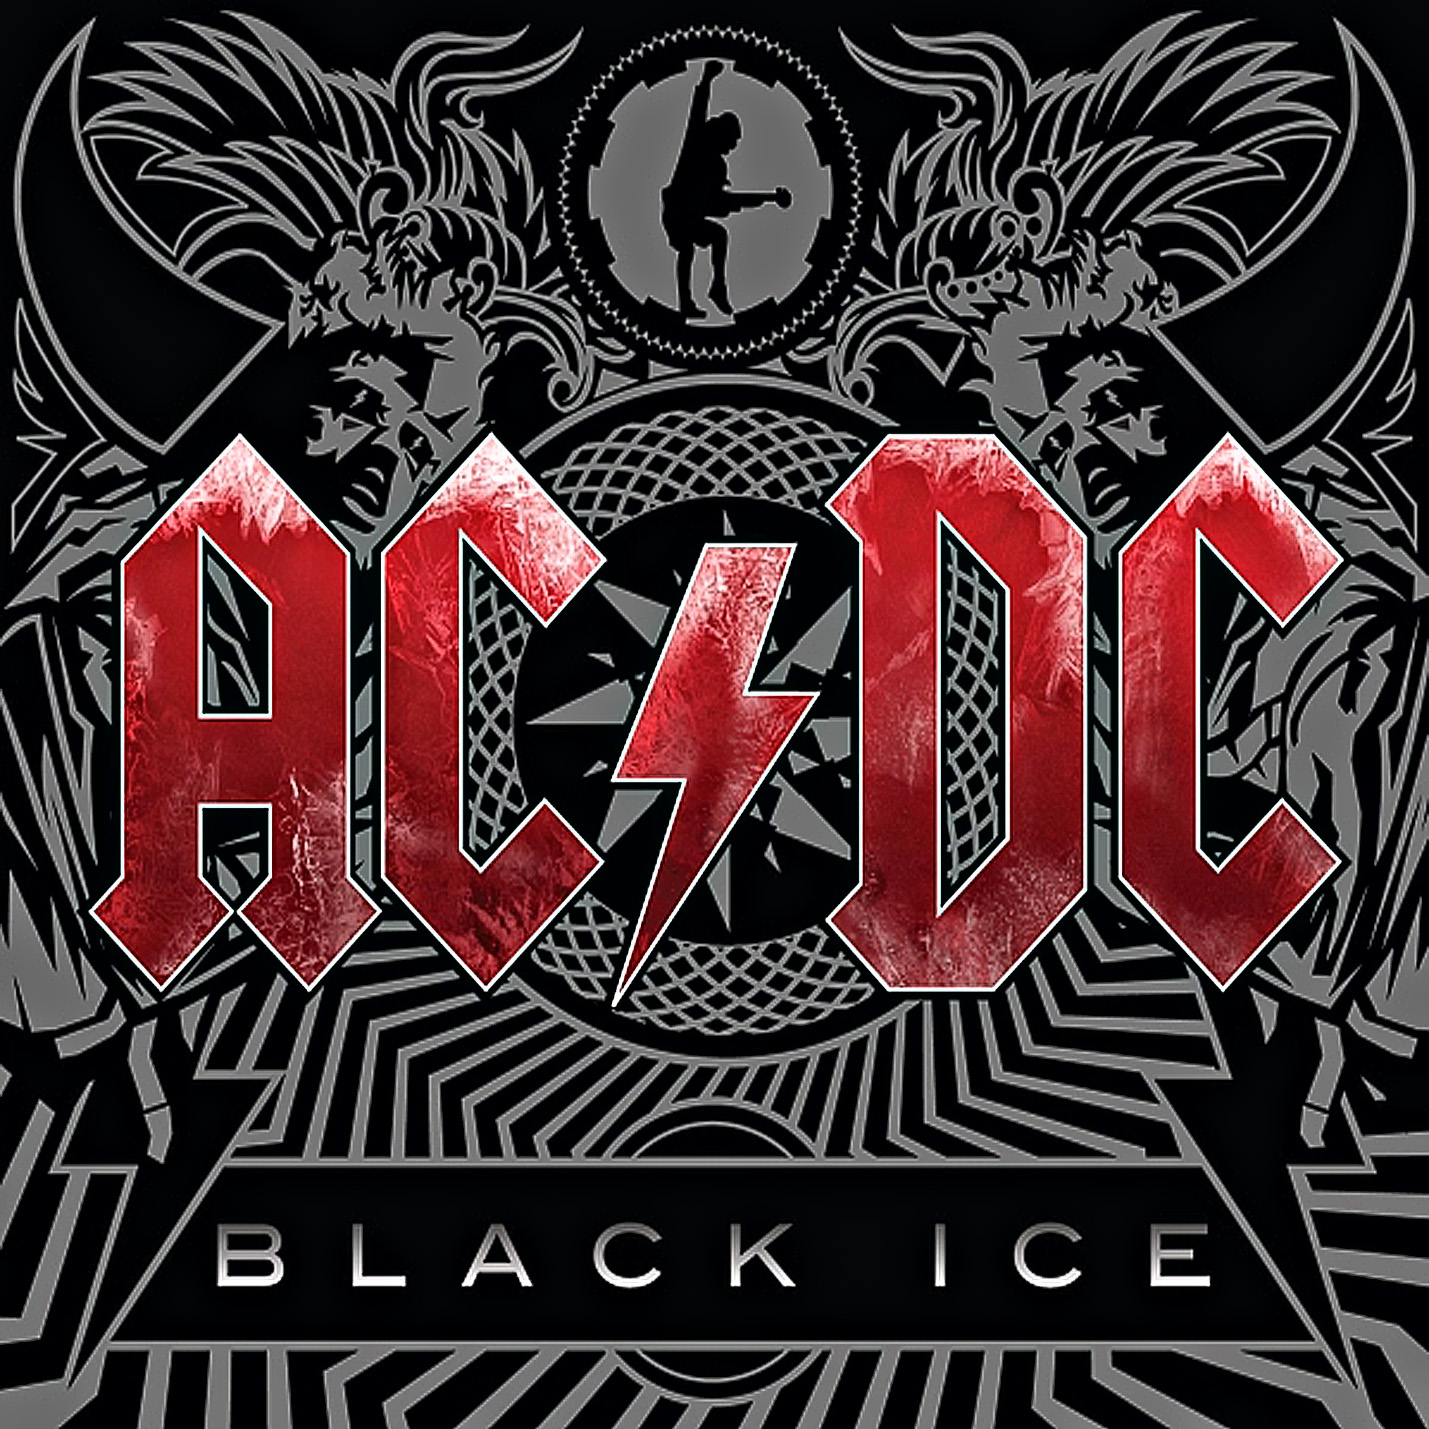 Ac dc family jewels dvd full torrent makewizard.